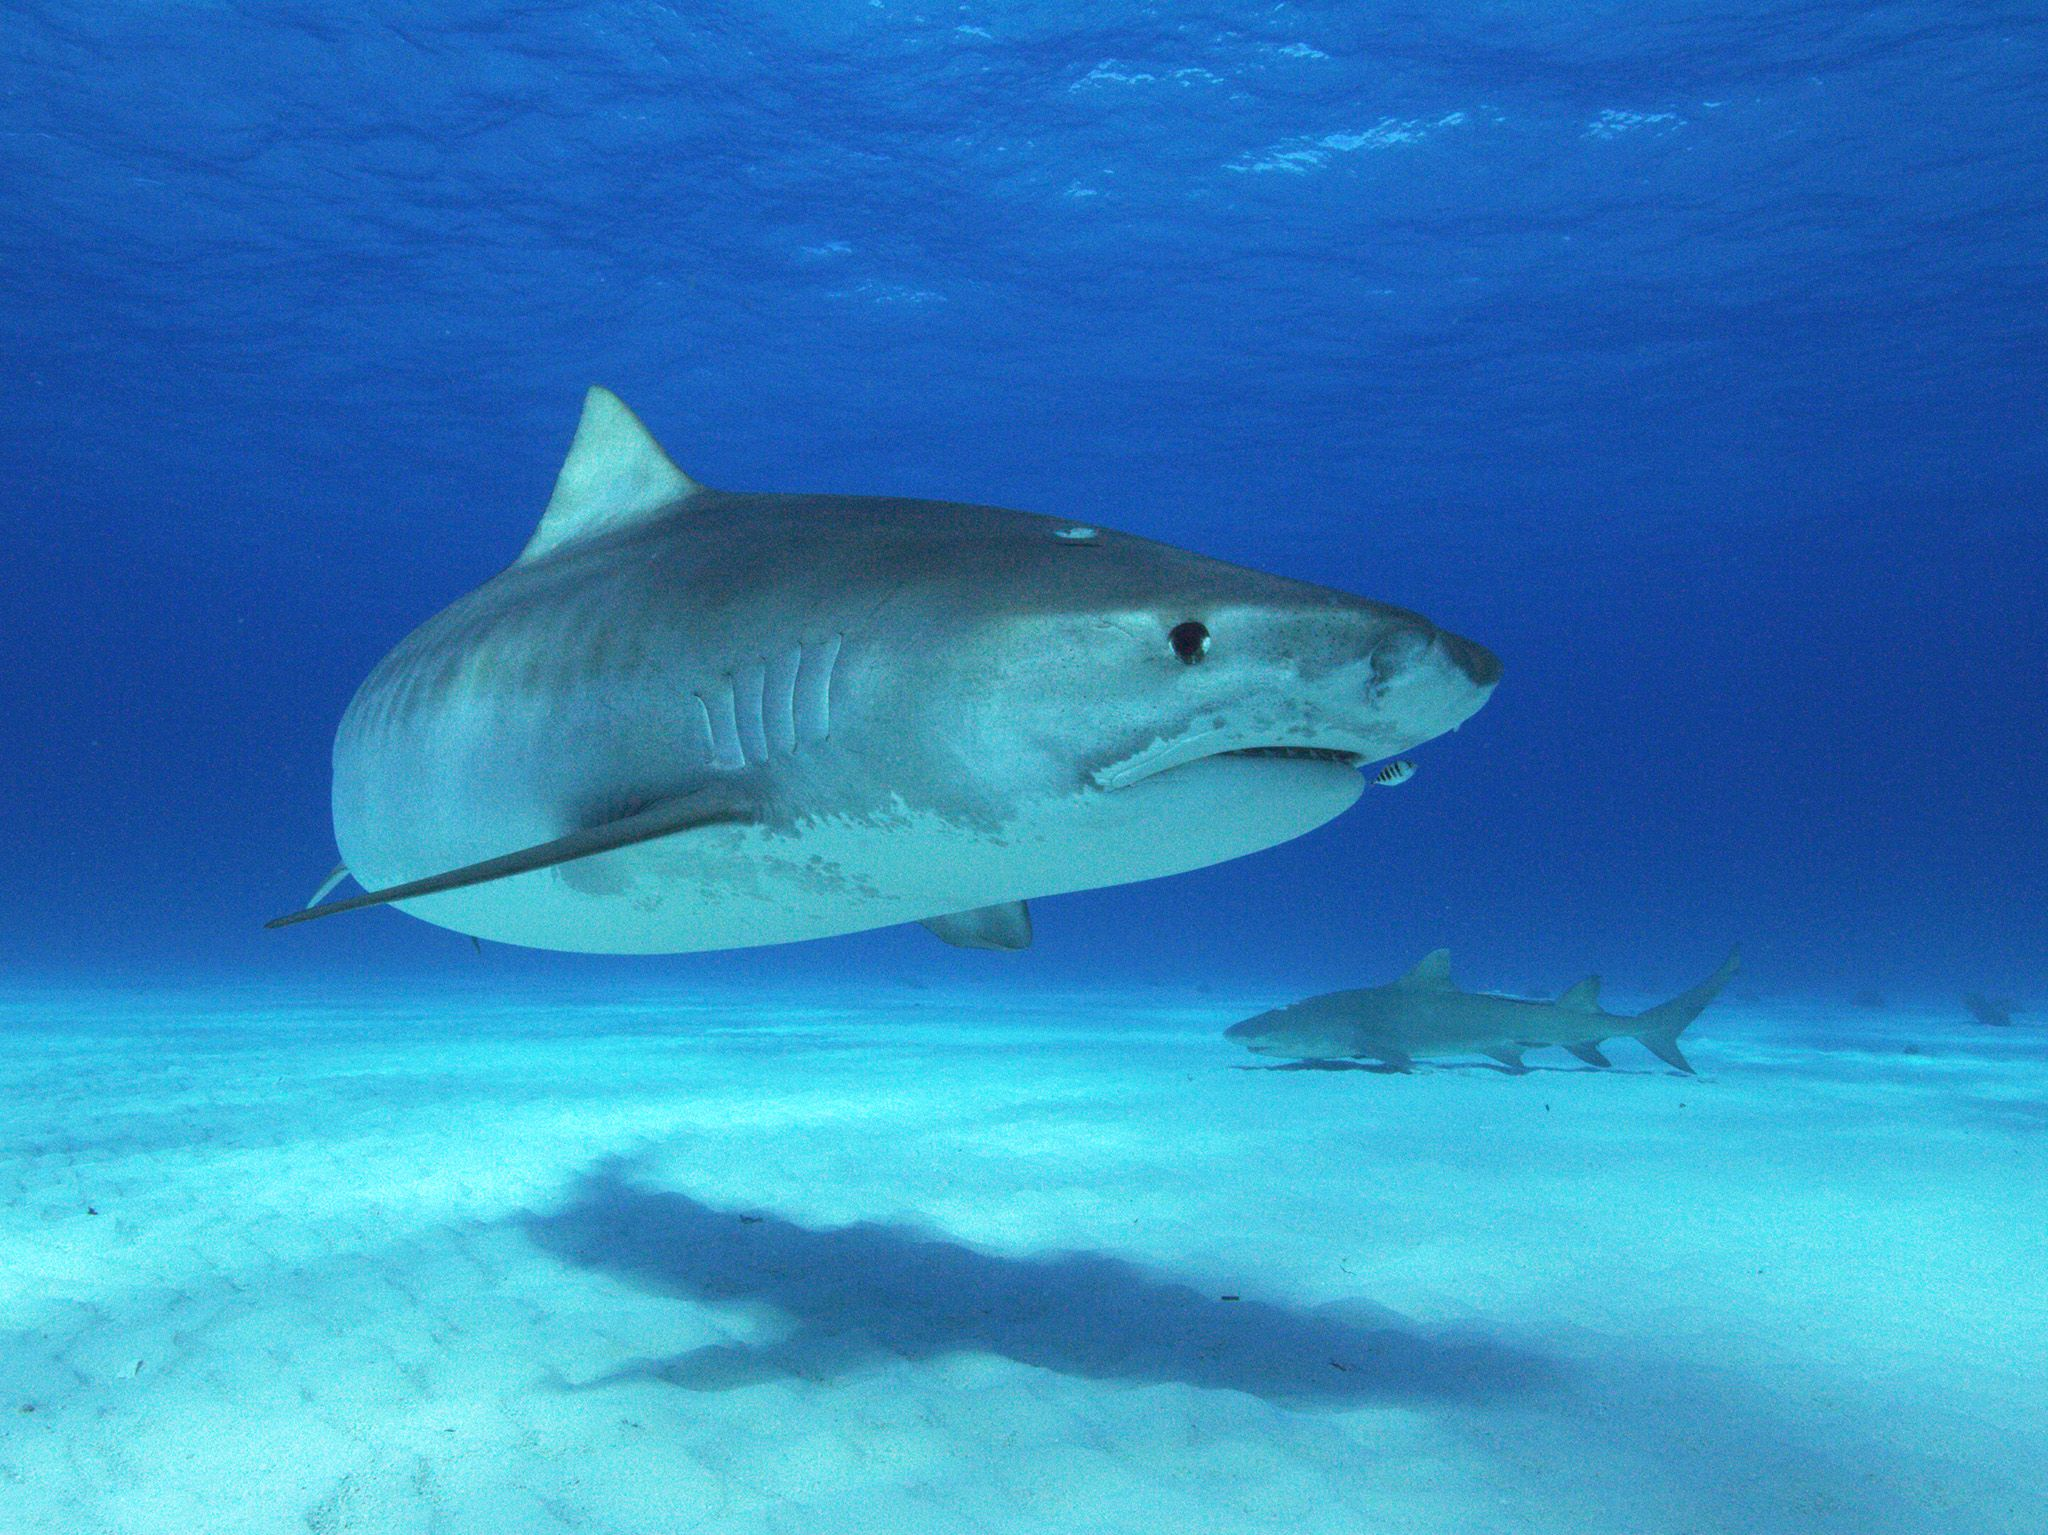 Tiger shark close to camera.  This image is from Forecast Shark Attack. [Photo of the day - July 2019]